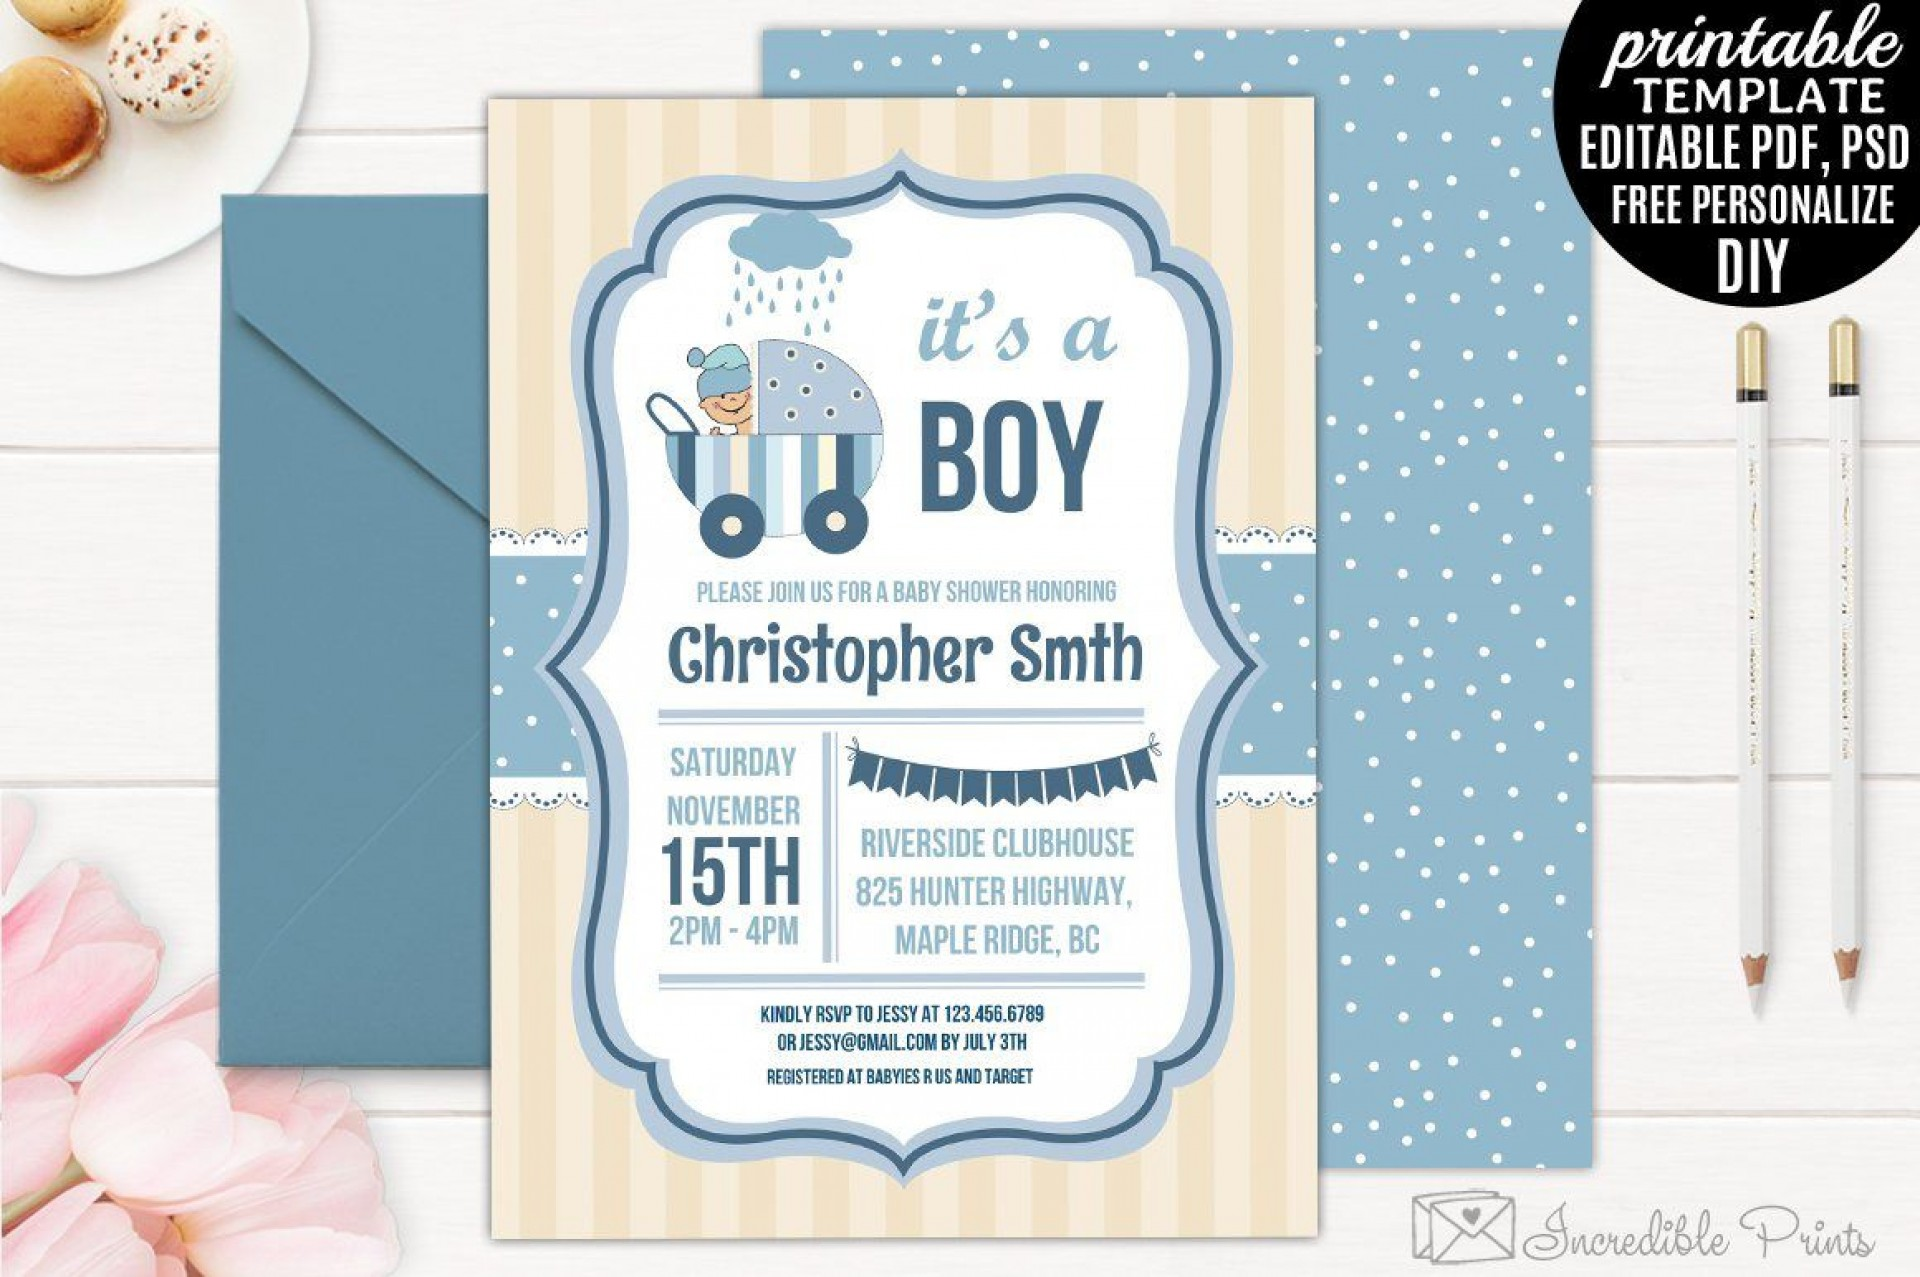 005 Marvelou Free Baby Shower Invitation Template For Boy Photo 1920